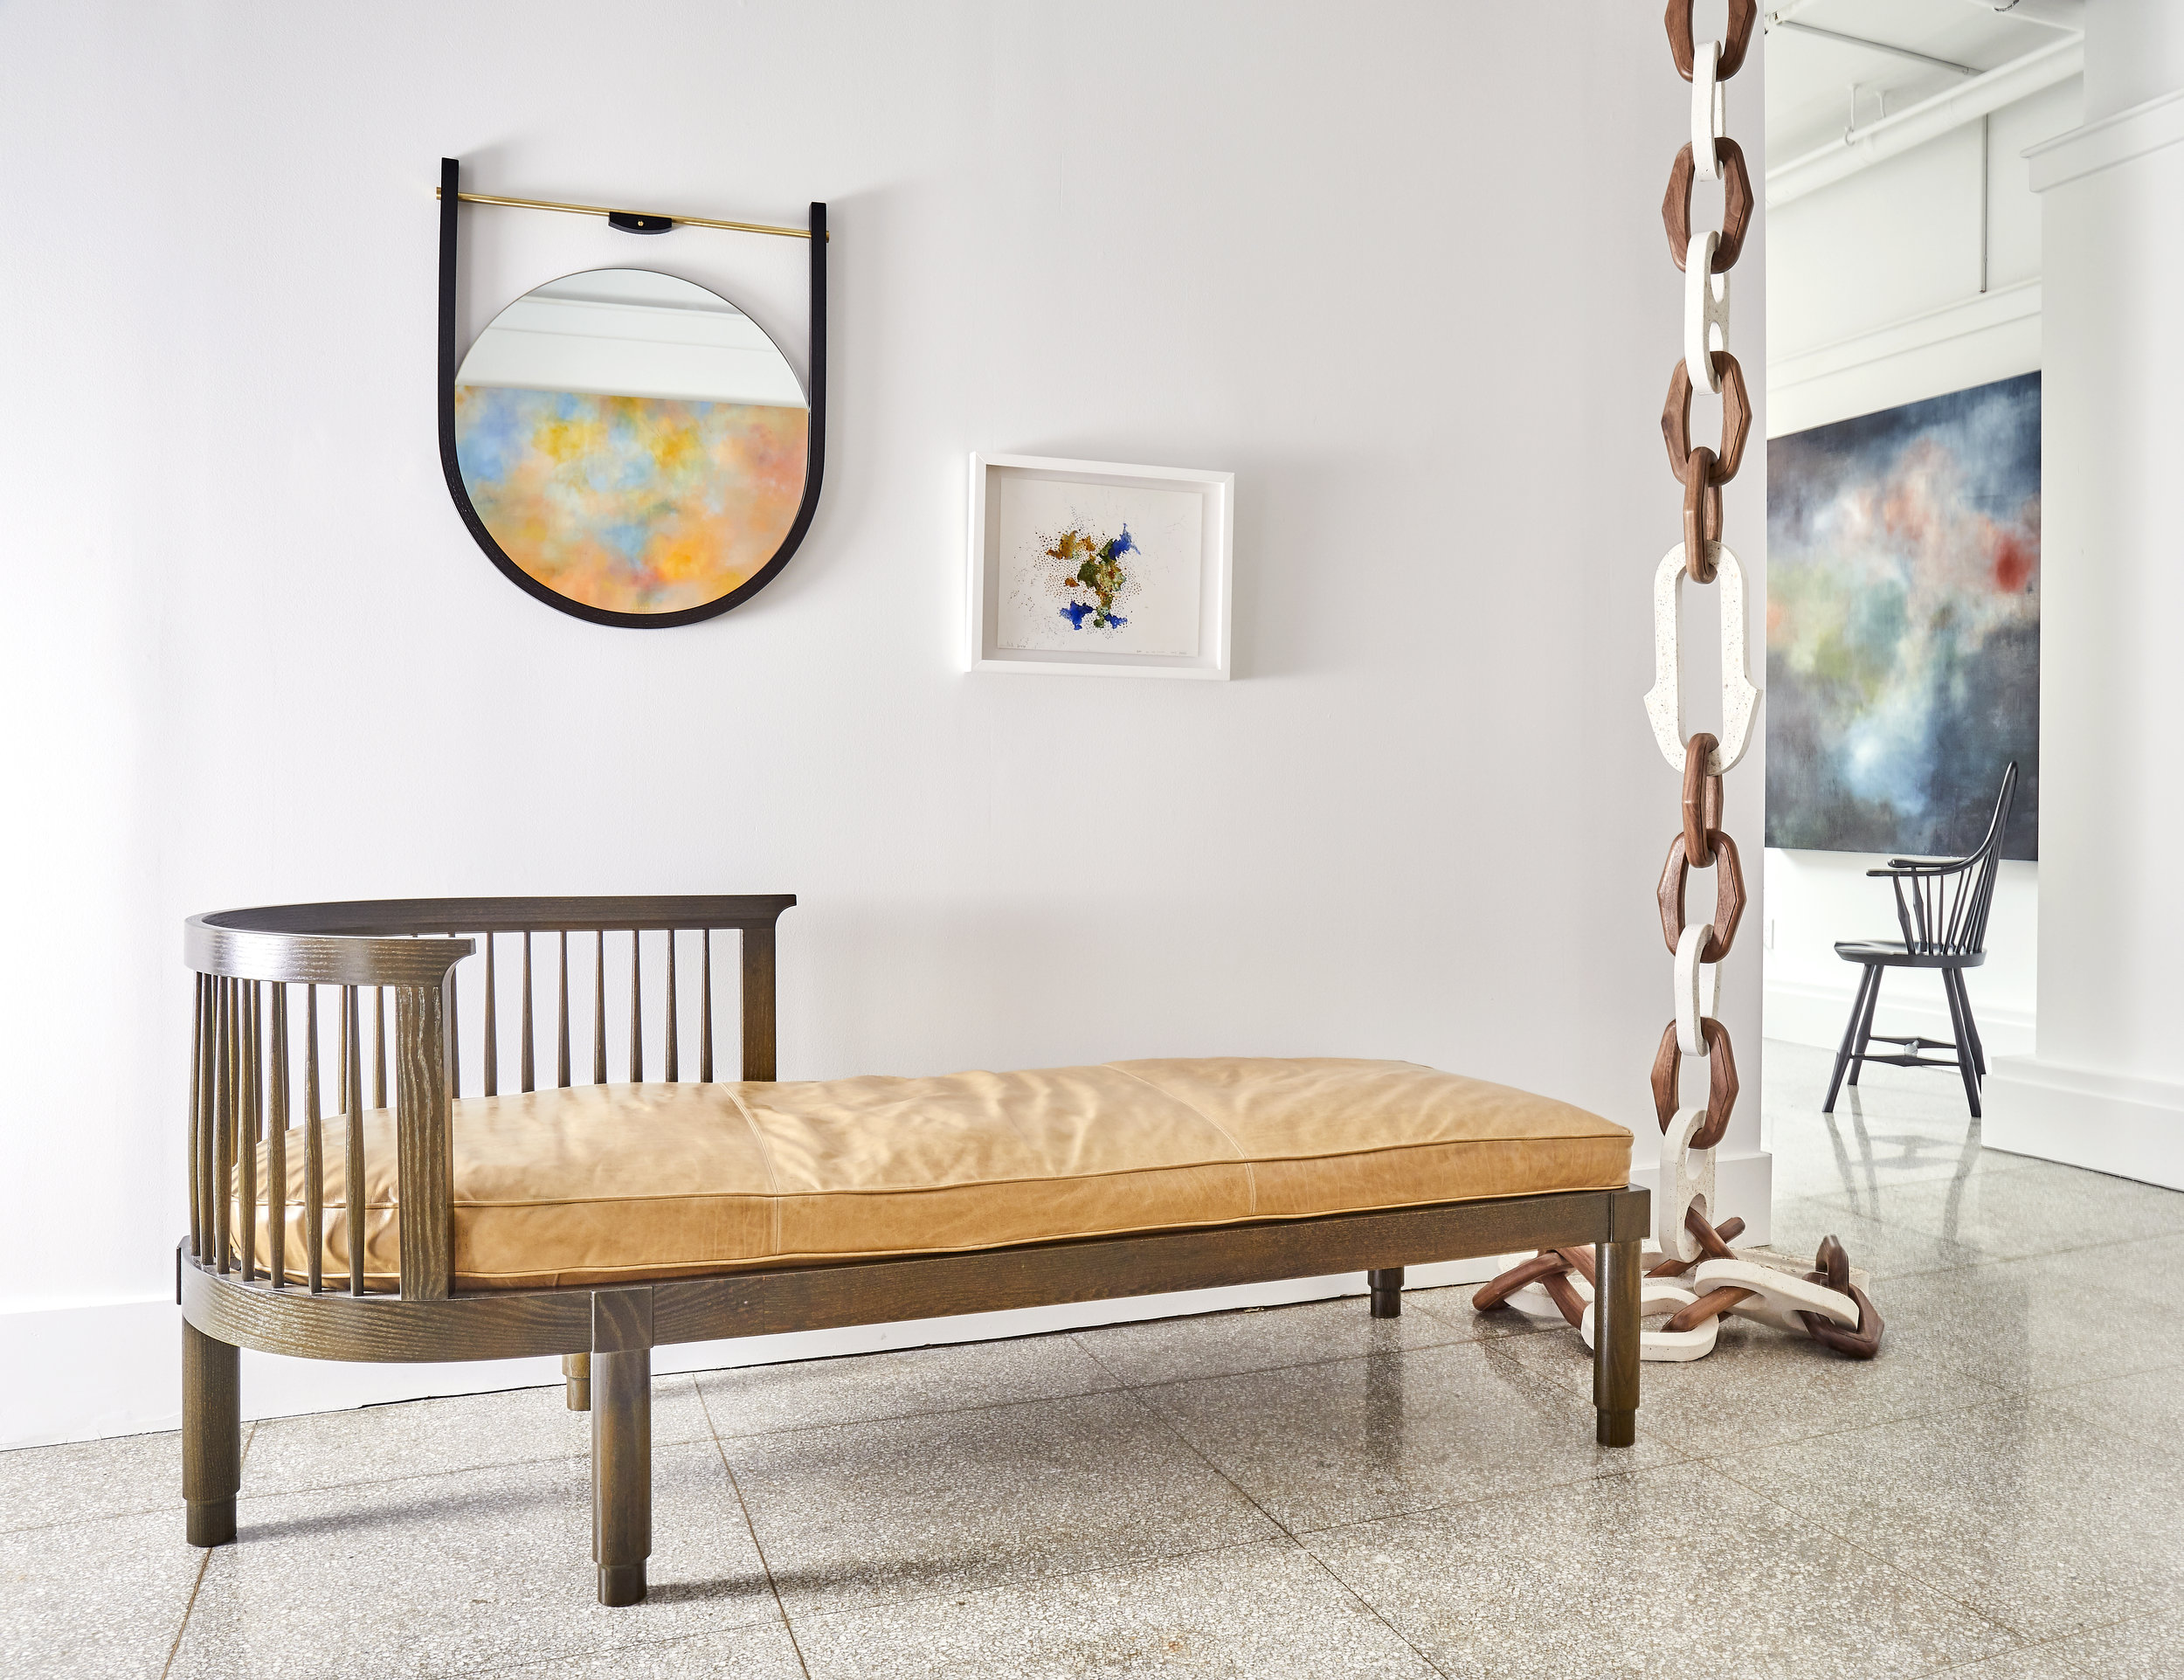 O&G-SALON INLET DAYBED no Pillows- PHOTO ANGEL TUCKER.jpg